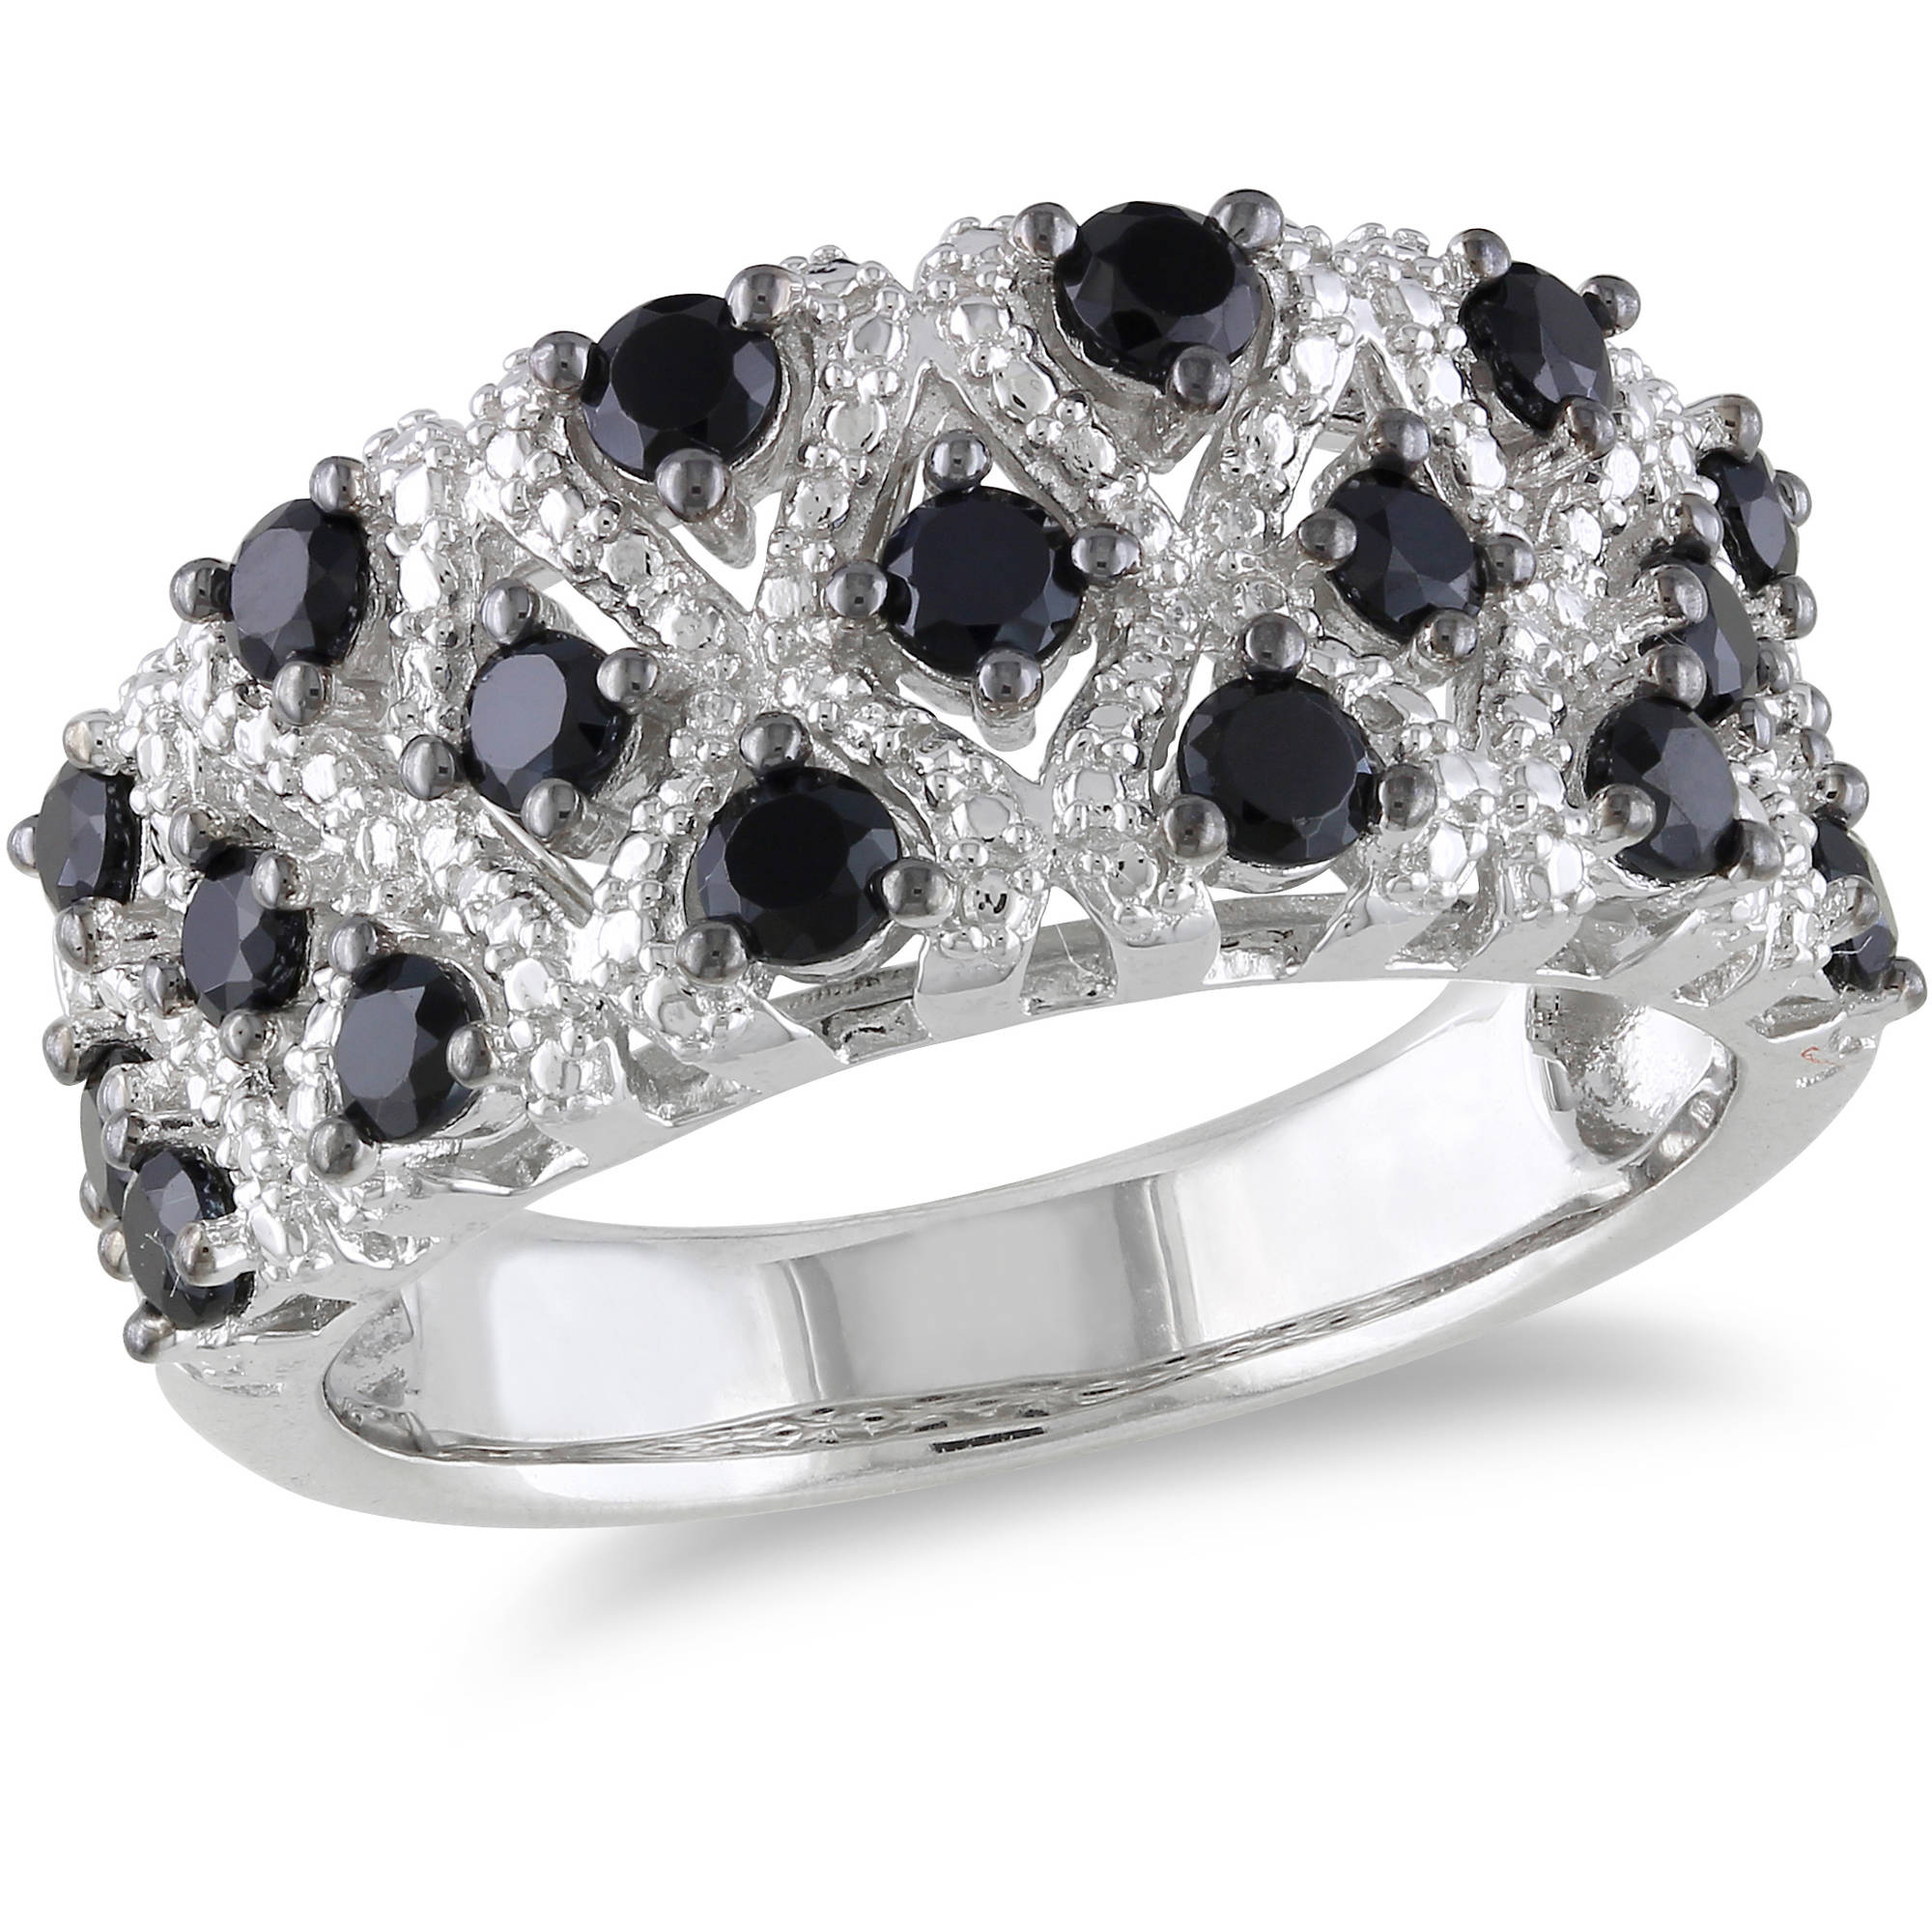 1-1/2 Carat T.G.W. Black Spinel Sterling Silver Fashion Ring